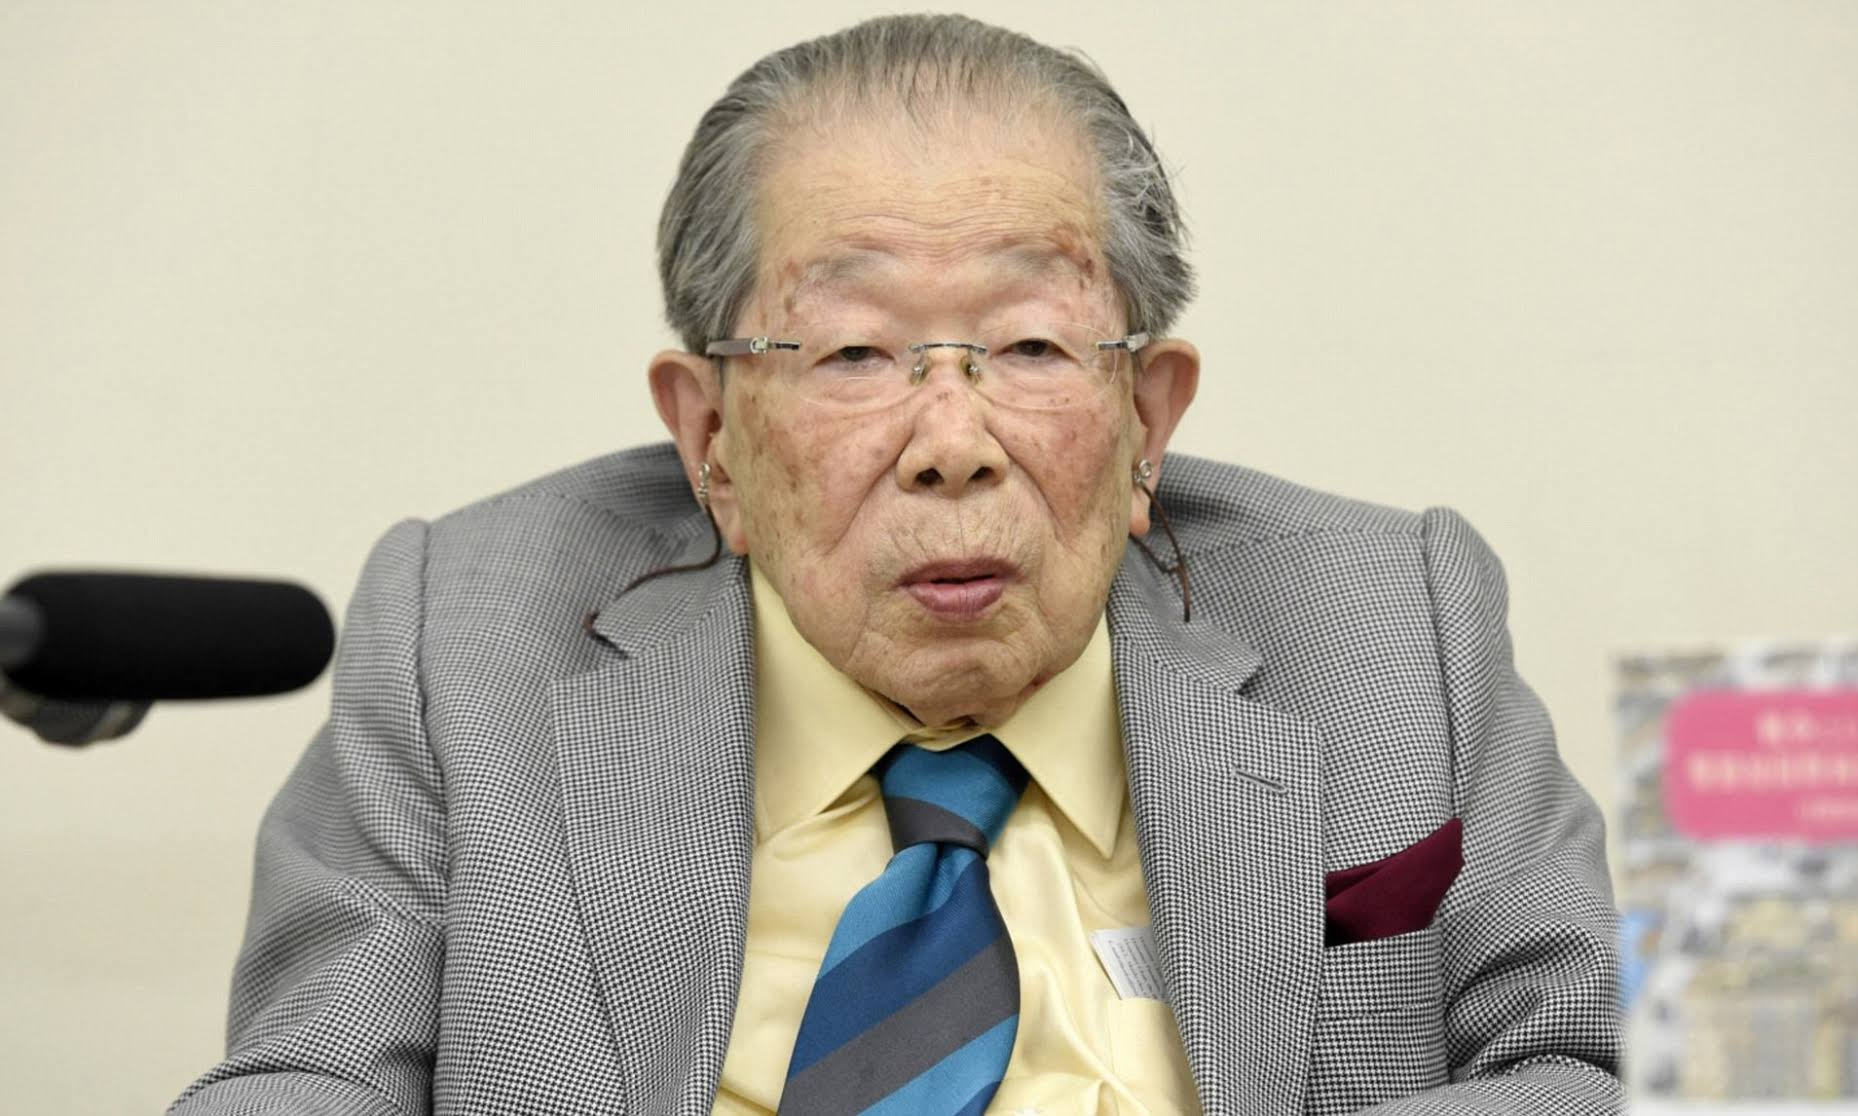 WORLD'S OLDEST MEDICAL DOCTOR DIES AGED 105 YEARS